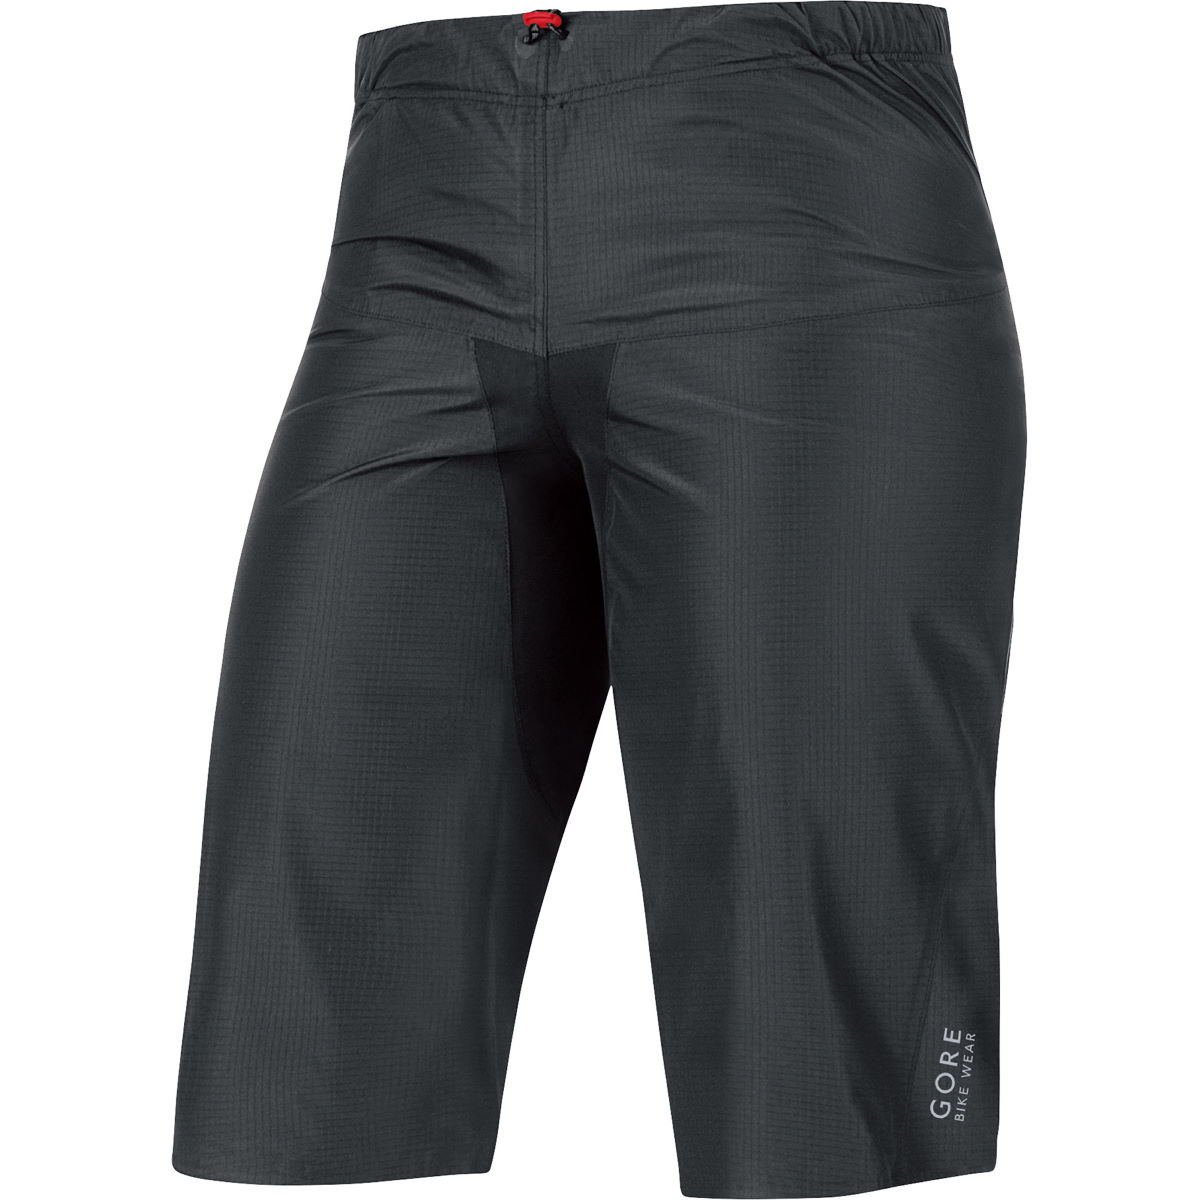 Gore Bike Wear Alp-X 3.0 Gore-Tex Active Shorts